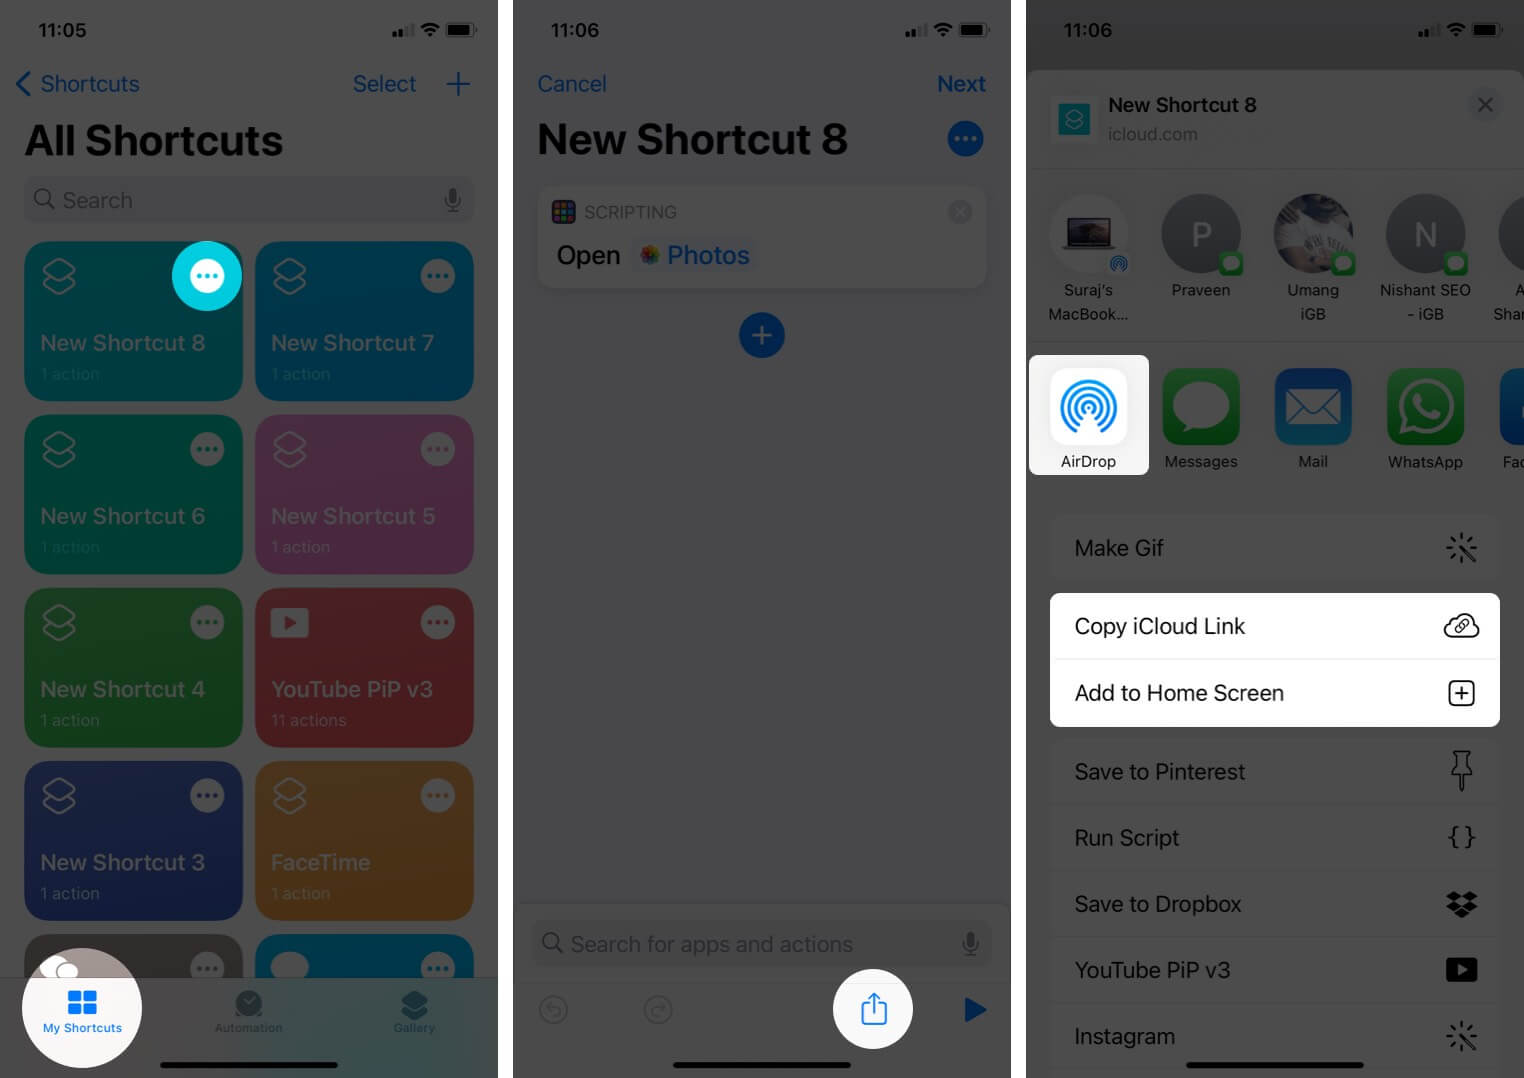 Share Shortcut with Other from Shortcuts App on iPhone